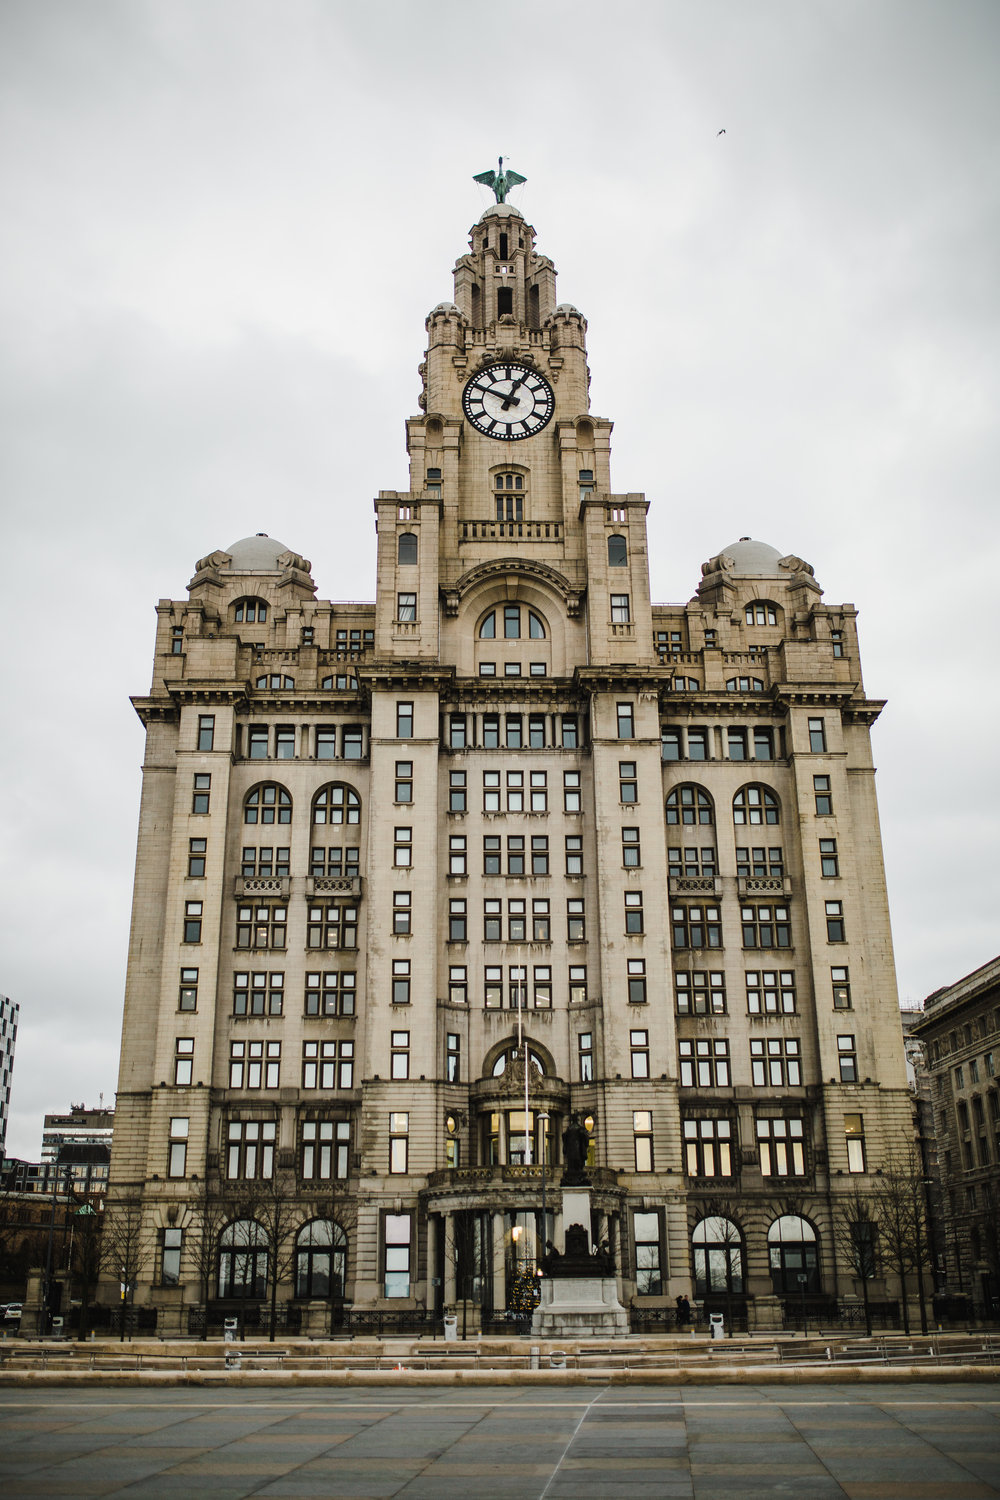 Outside of The Liver Building for a winter themed wedding